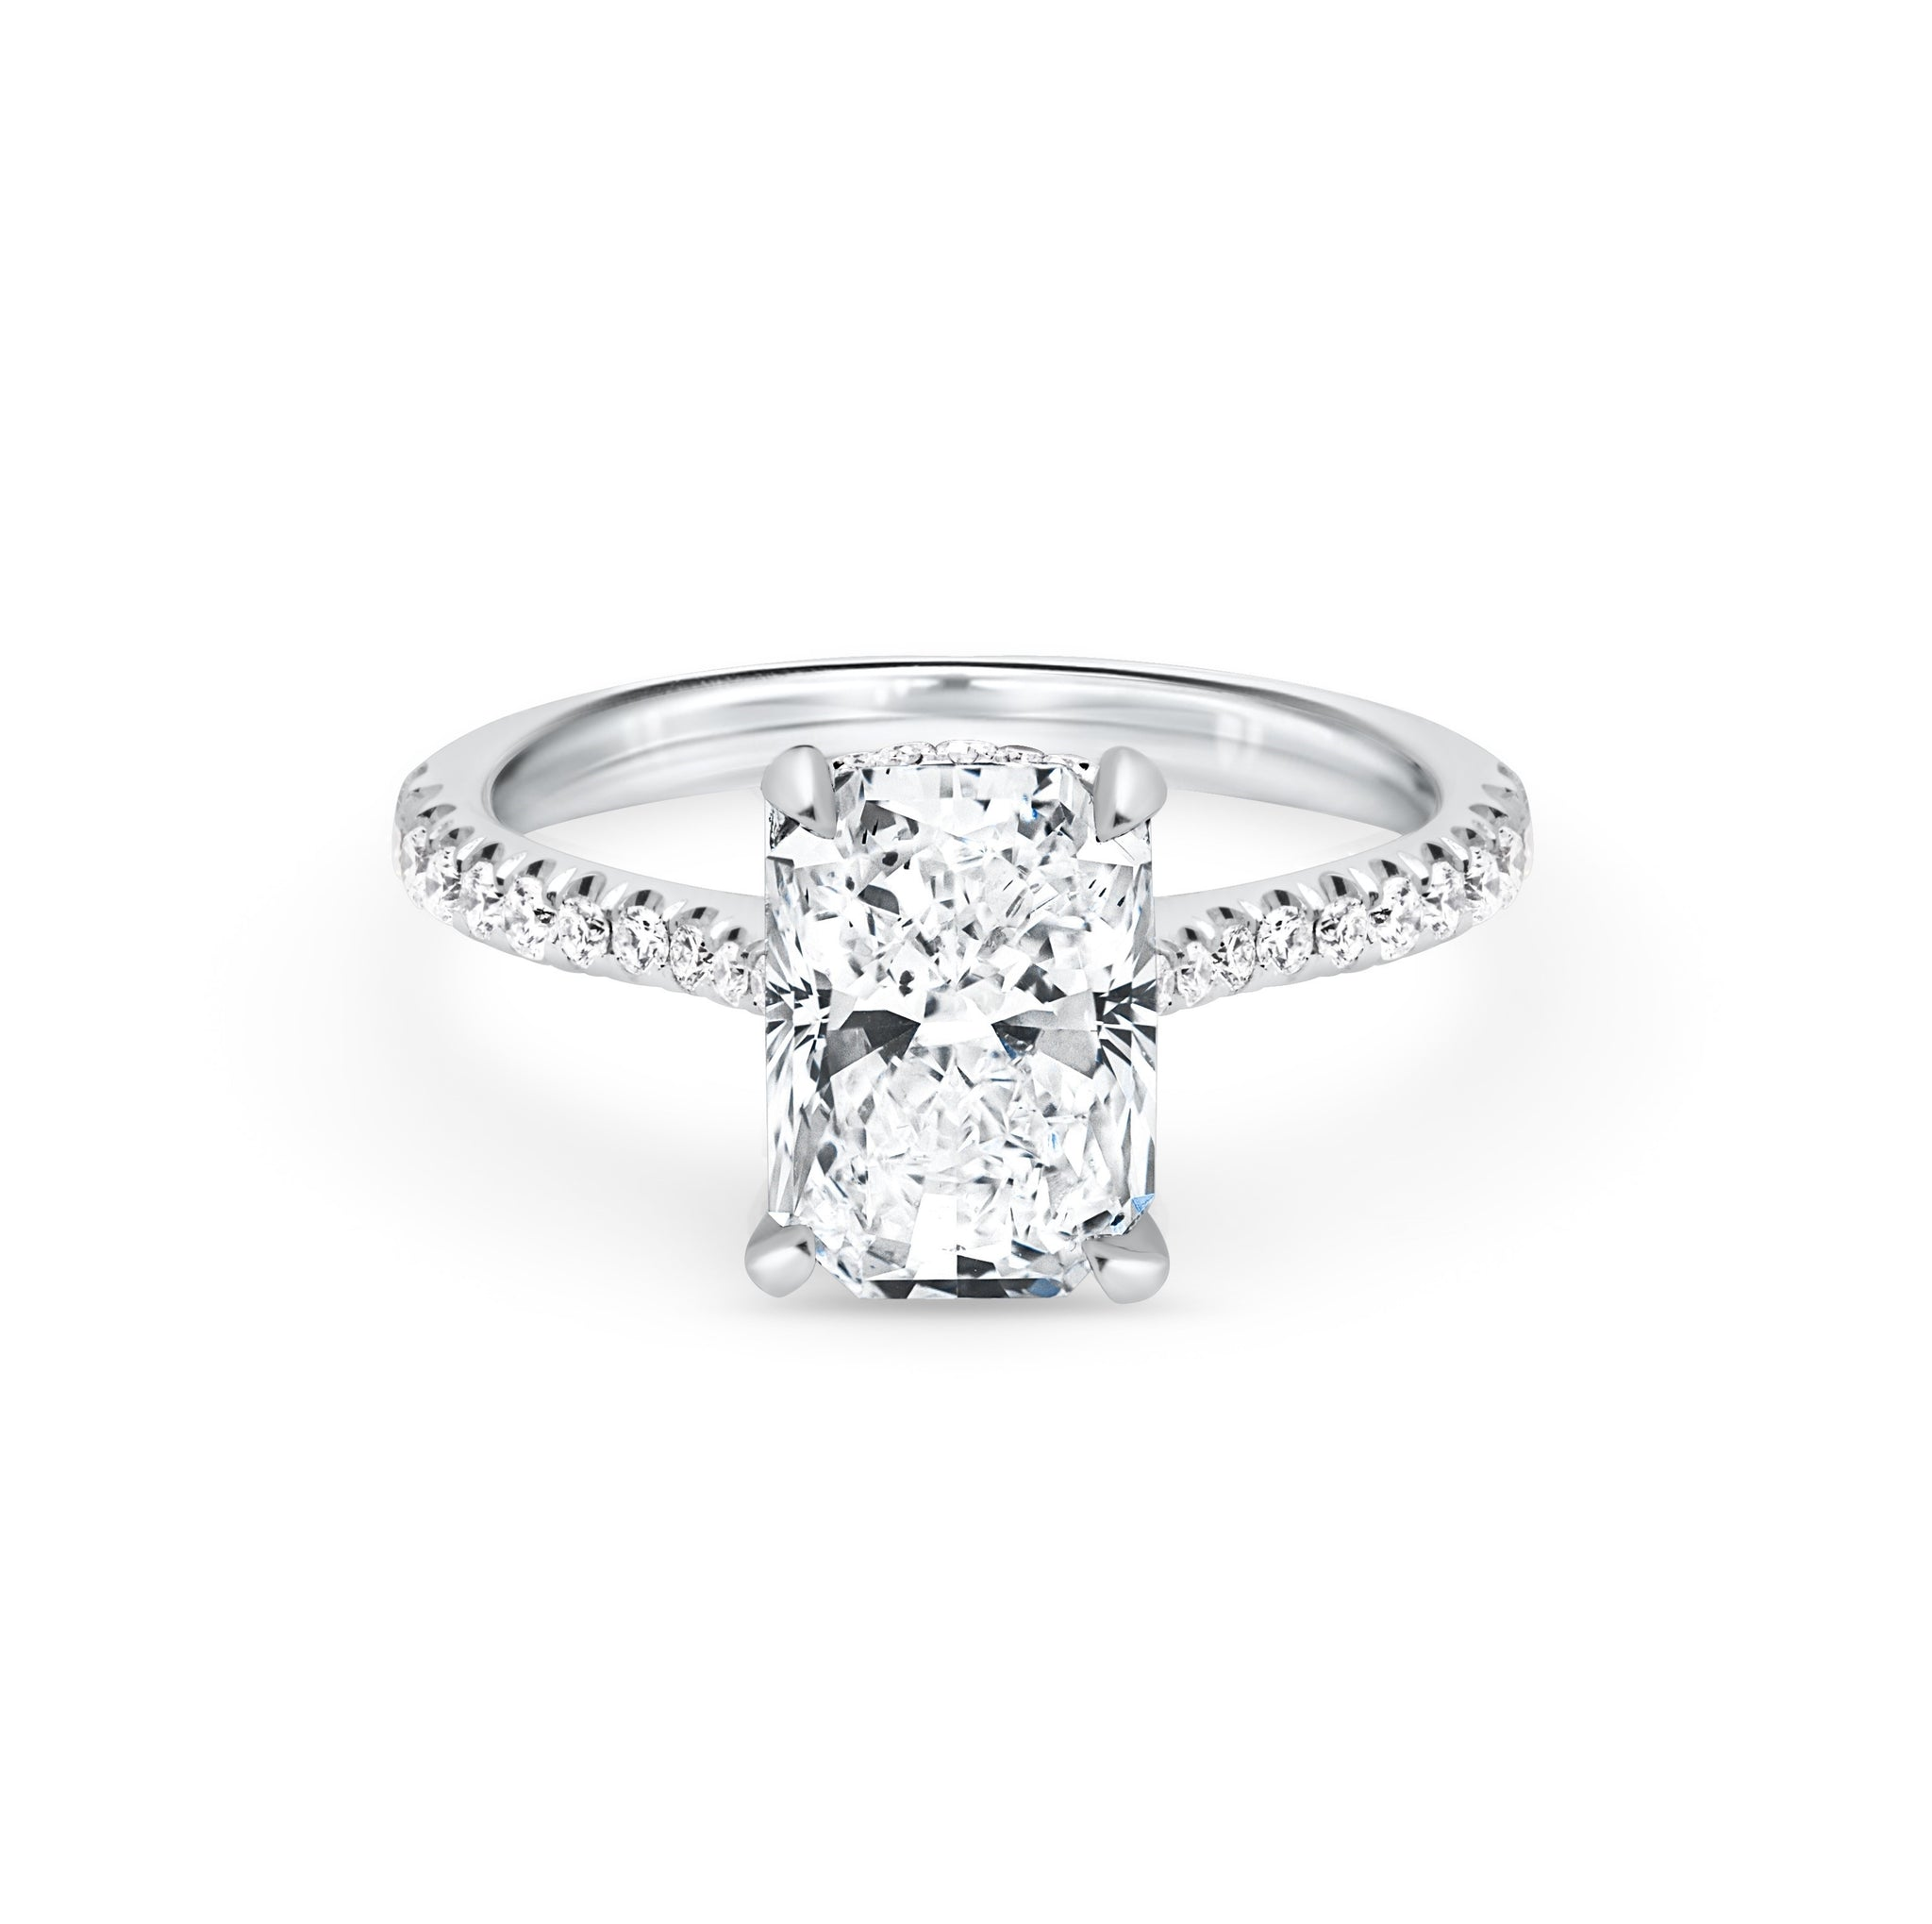 Radiant Cut Diamond Engagement Ring with Pave 3.88ctw